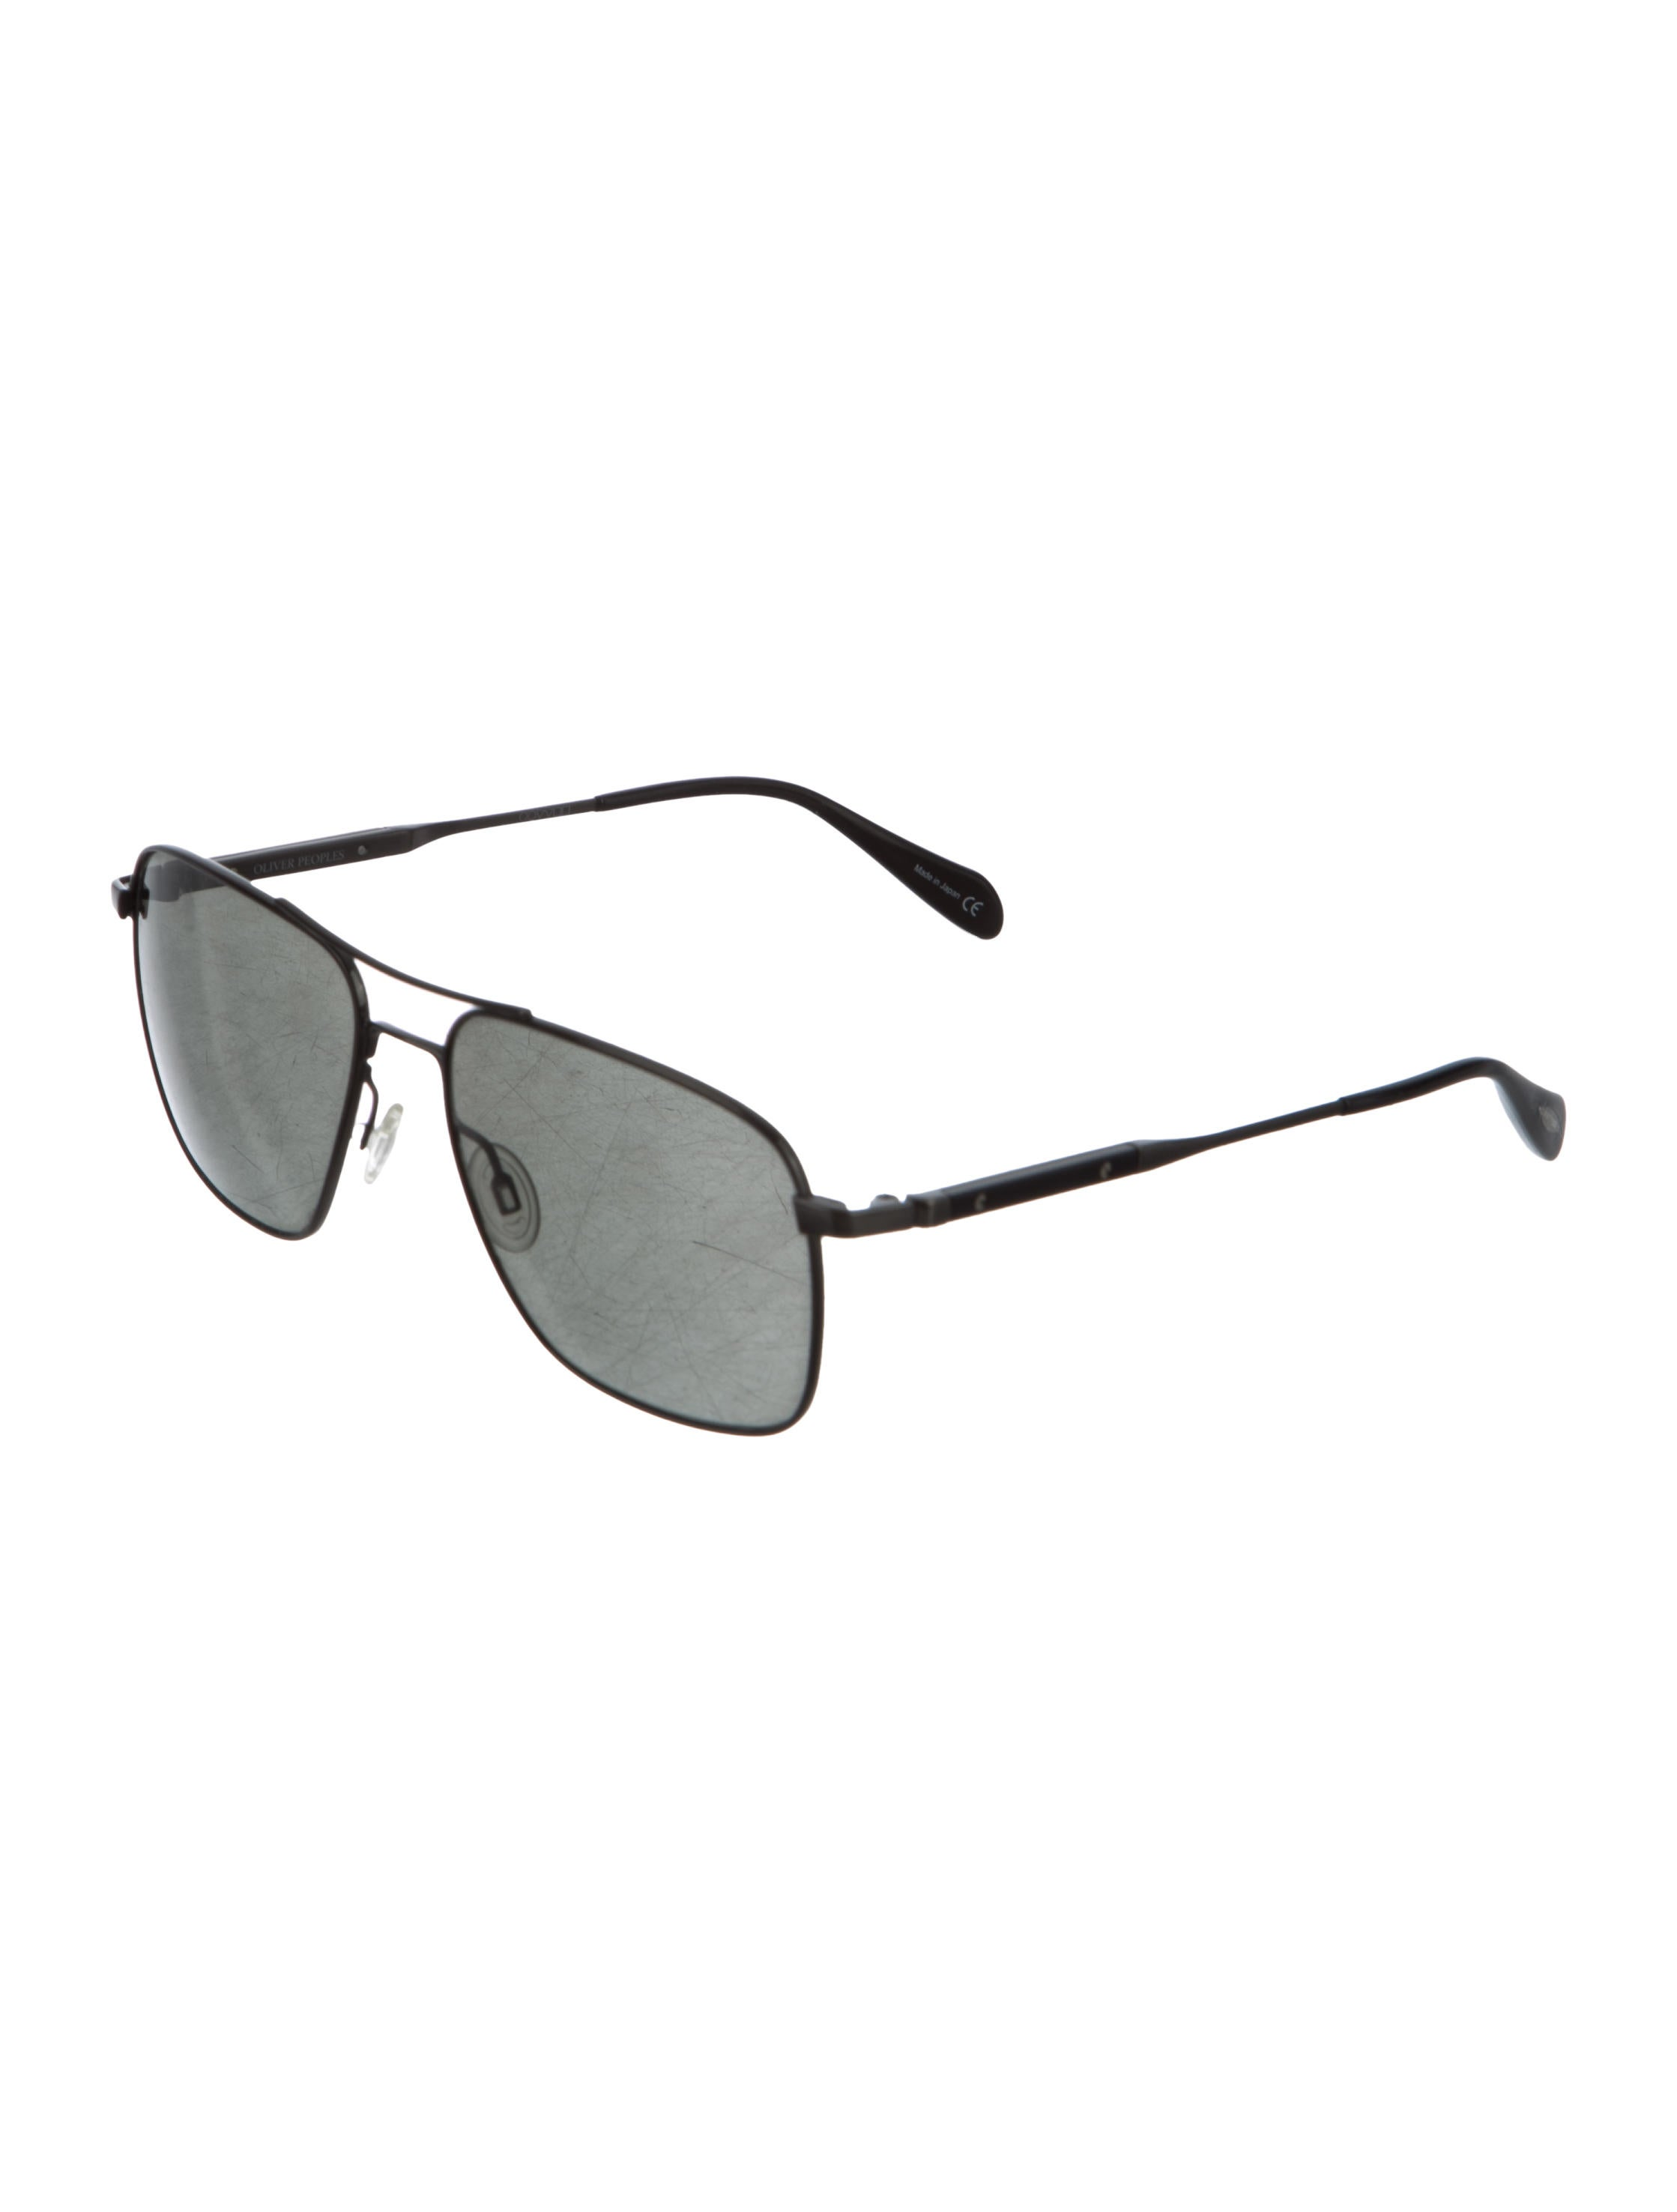 ae5942489b Oliver Peoples Linford Polarized Sunglasses - Accessories - WOP23680 ...